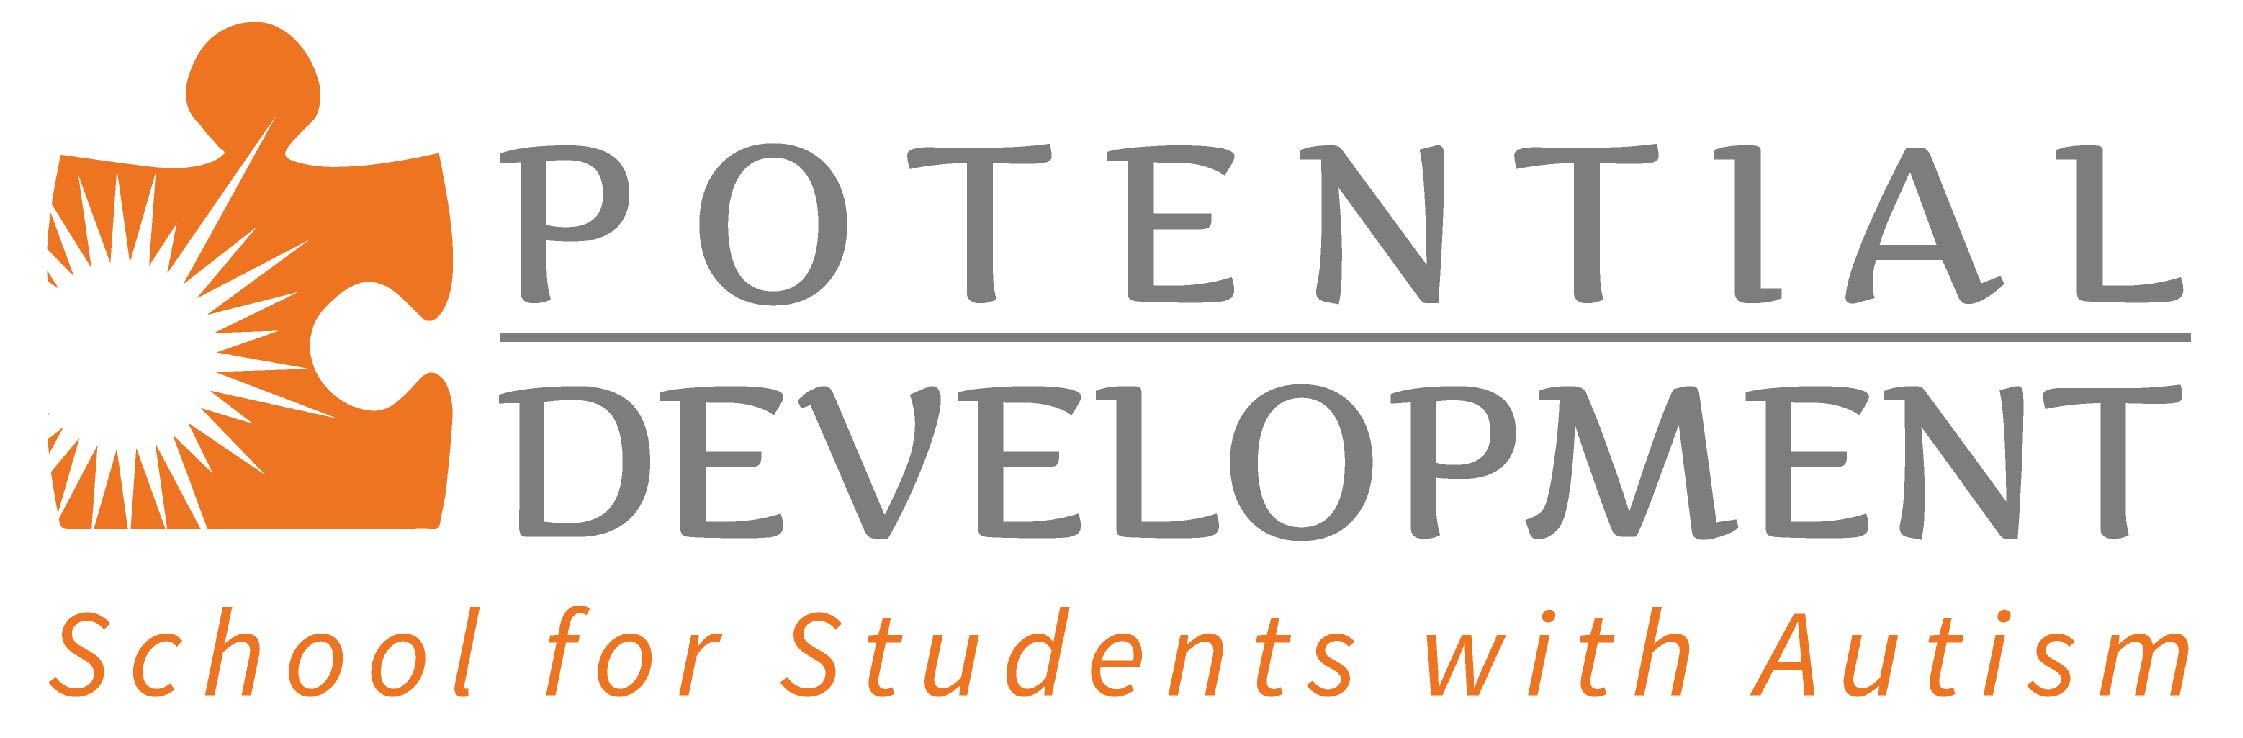 Potential-Development-Logo-Outlined-other-text